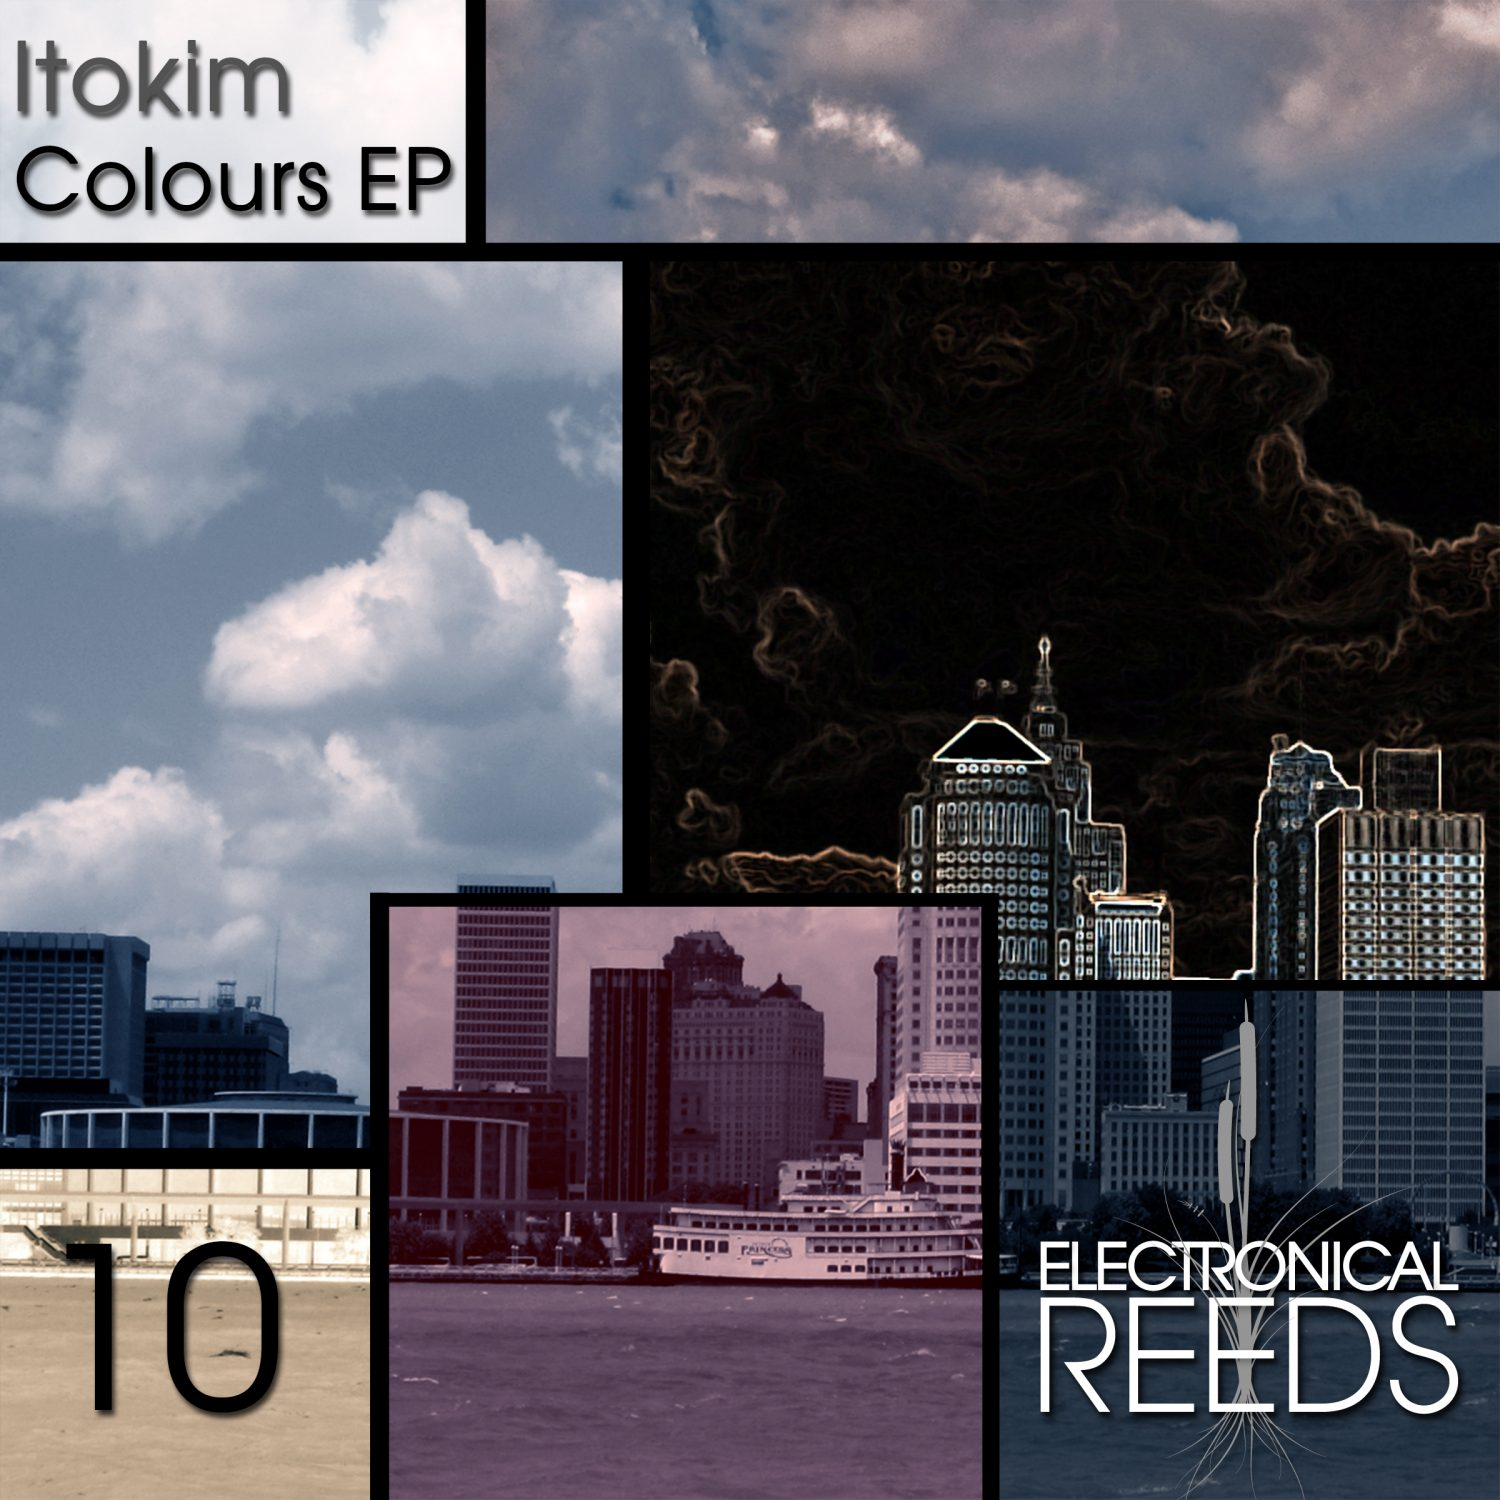 ER010 - Itokim - Colours EP - Electronical Reeds